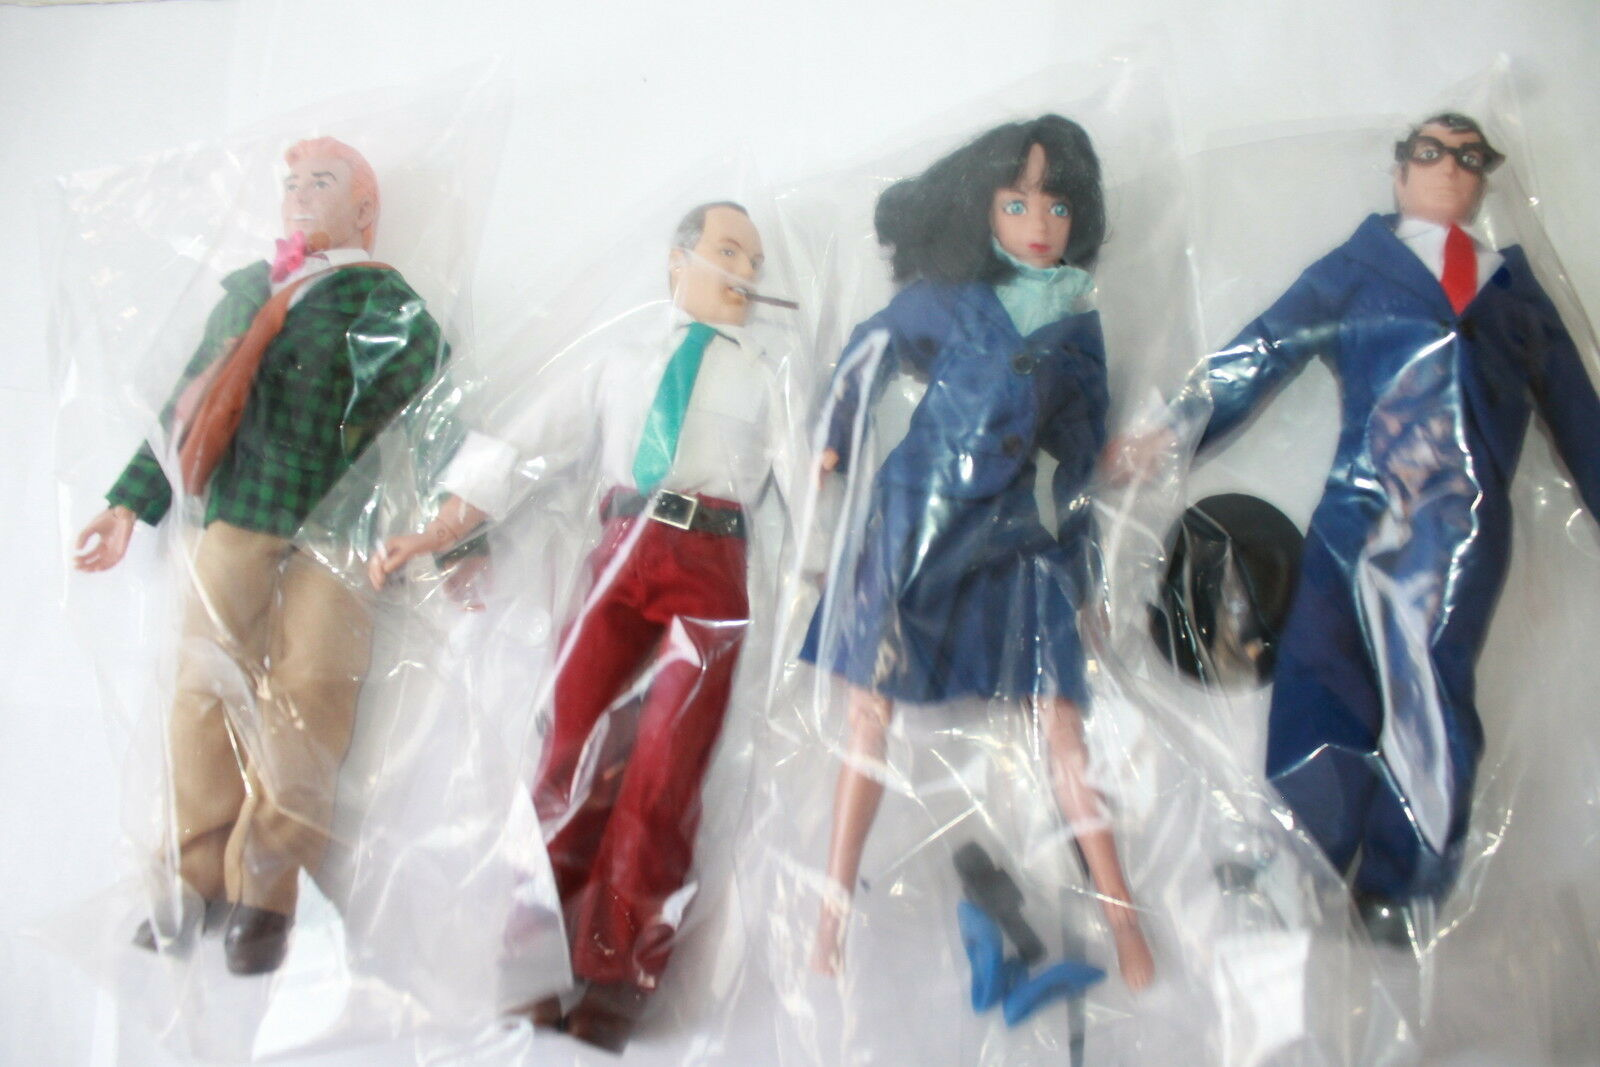 SUPERMAN SERIES 2 2 2 ;CLARK; LOIS; JIMMY; PERRY  NEW IN POLYBAG 8 INCH FIGURES 3c676a